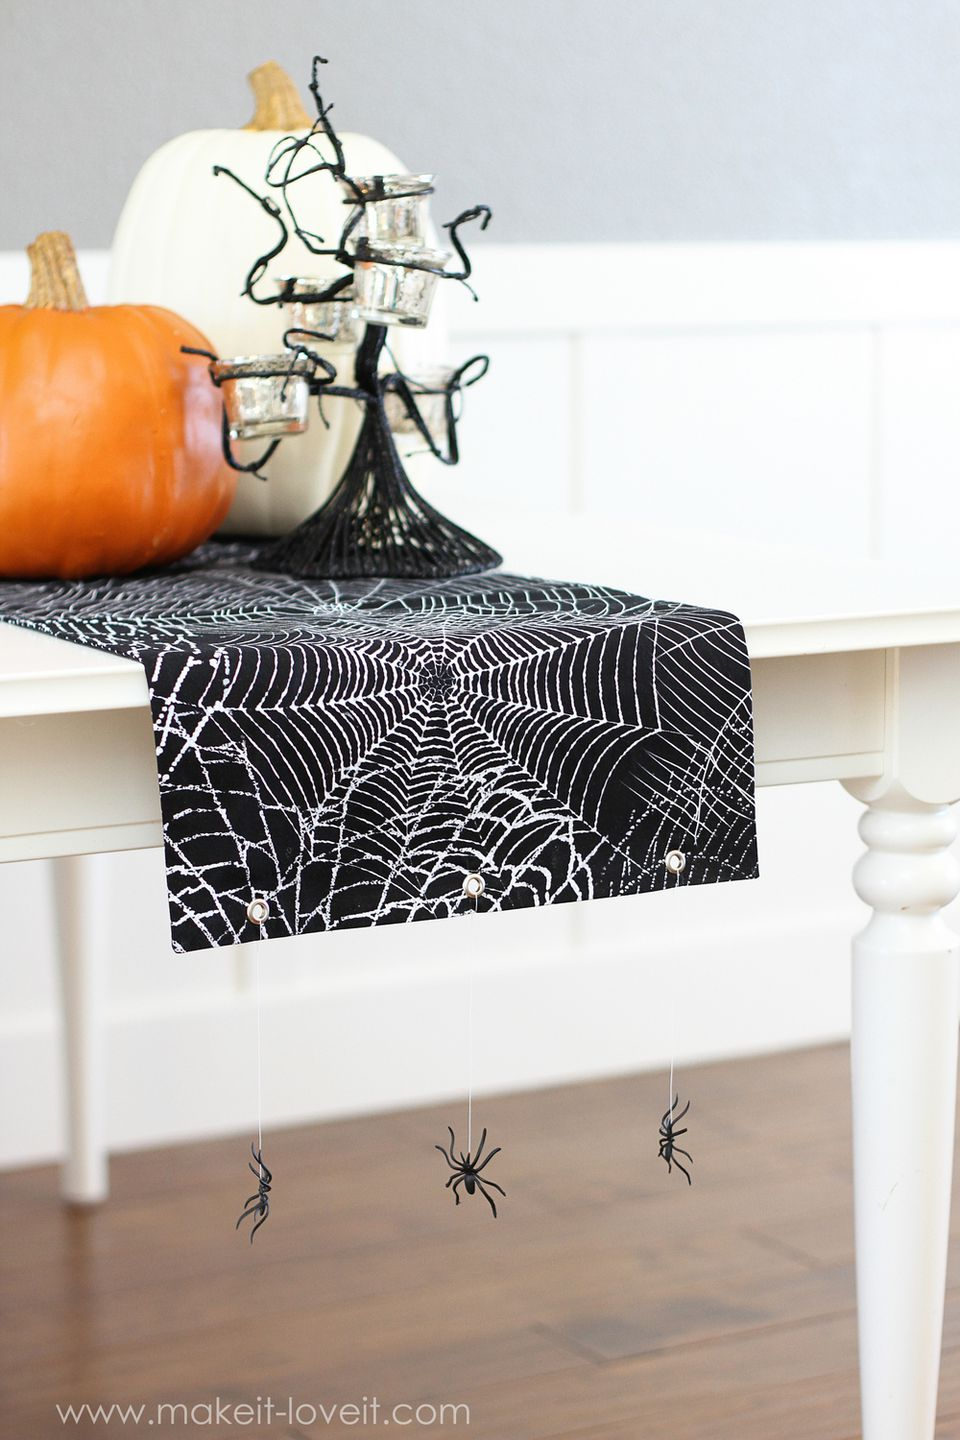 Hanging Spiders Table Runner